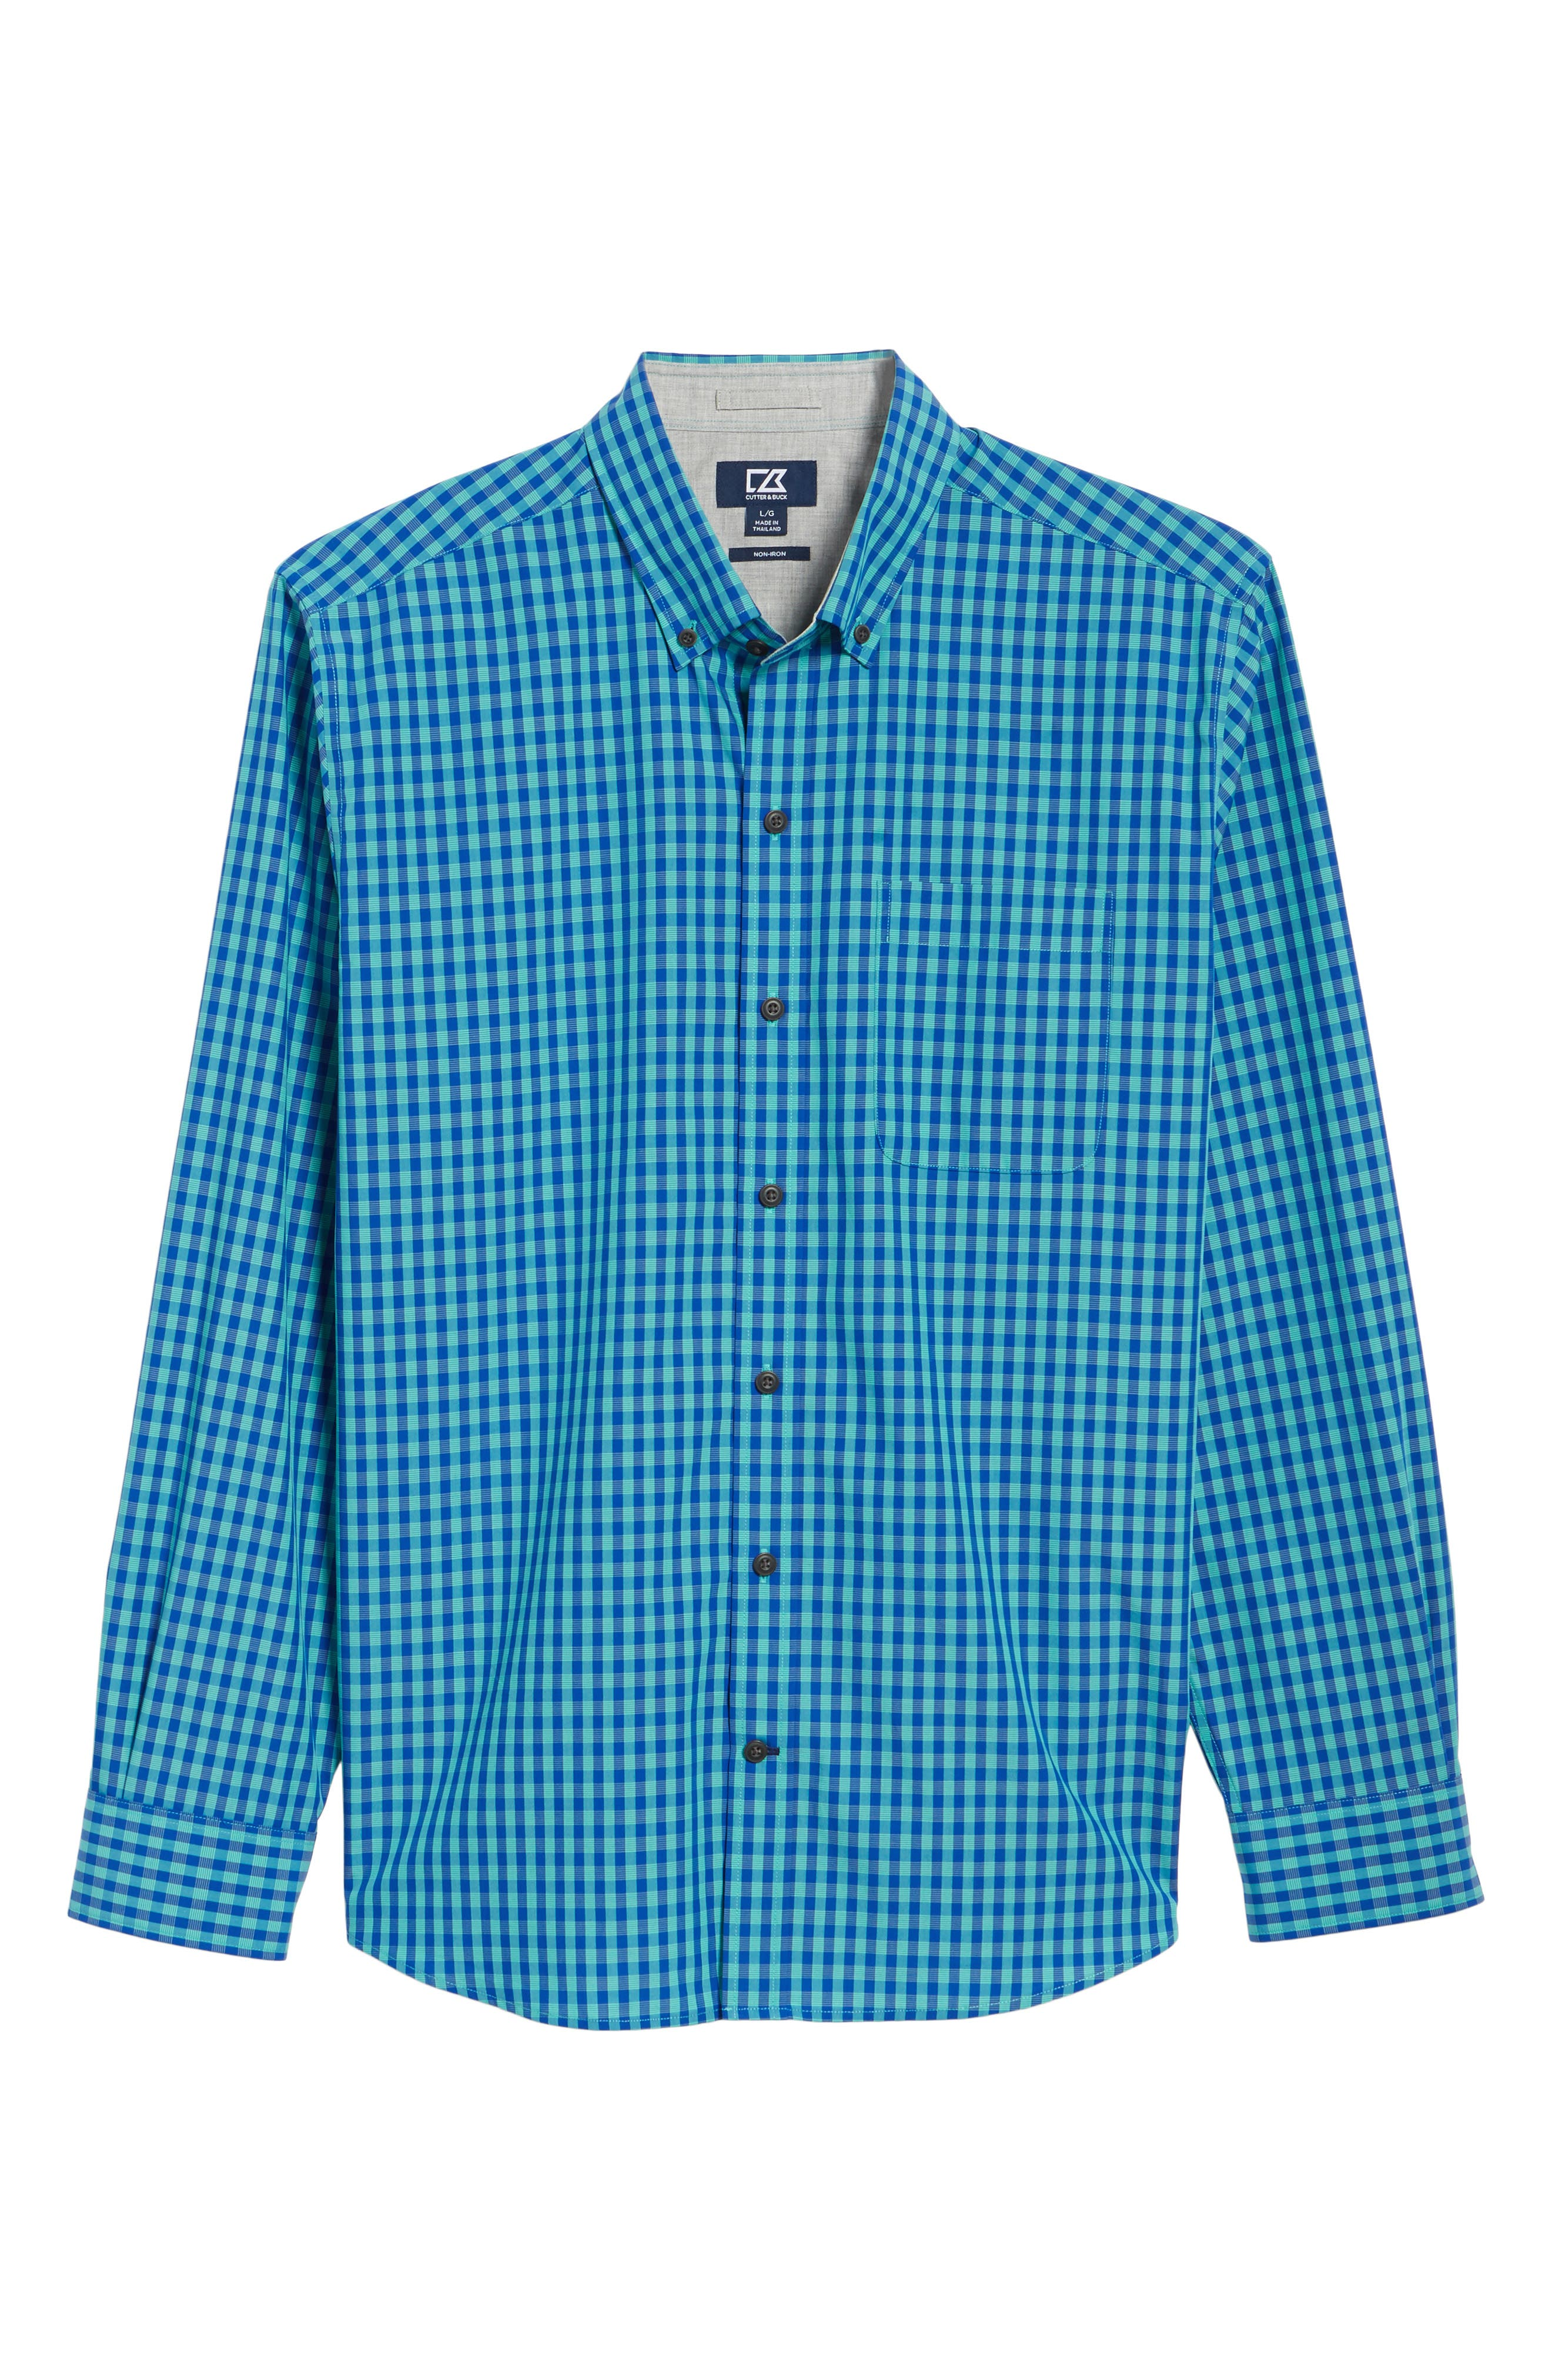 Myles Classic Fit Non-Iron Gingham Sport Shirt,                             Alternate thumbnail 6, color,                             NEWPORT